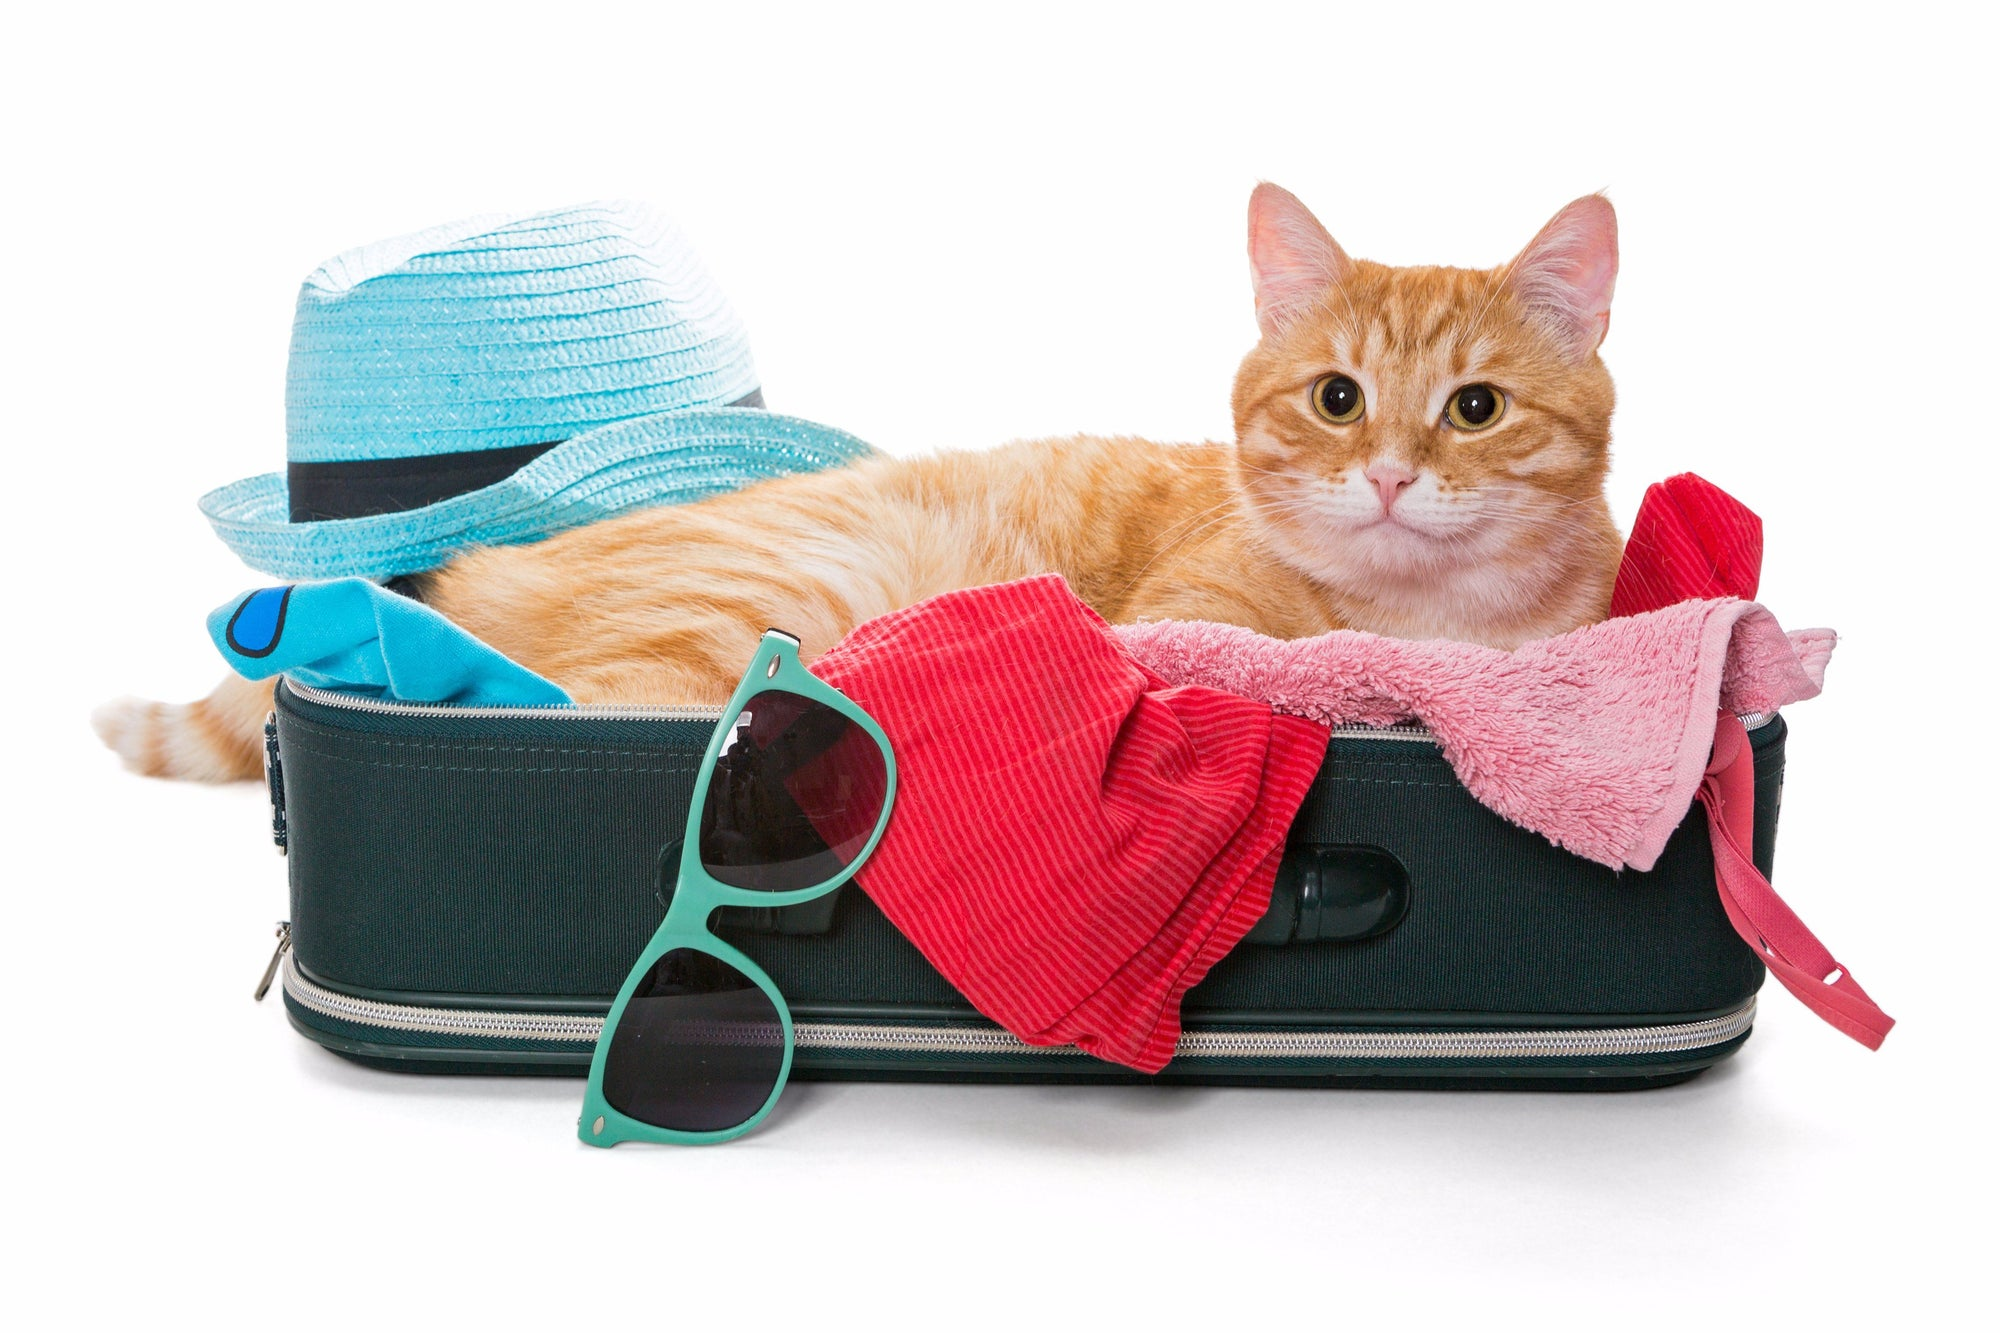 Making Travel Easy on Your Cat This Holiday Season